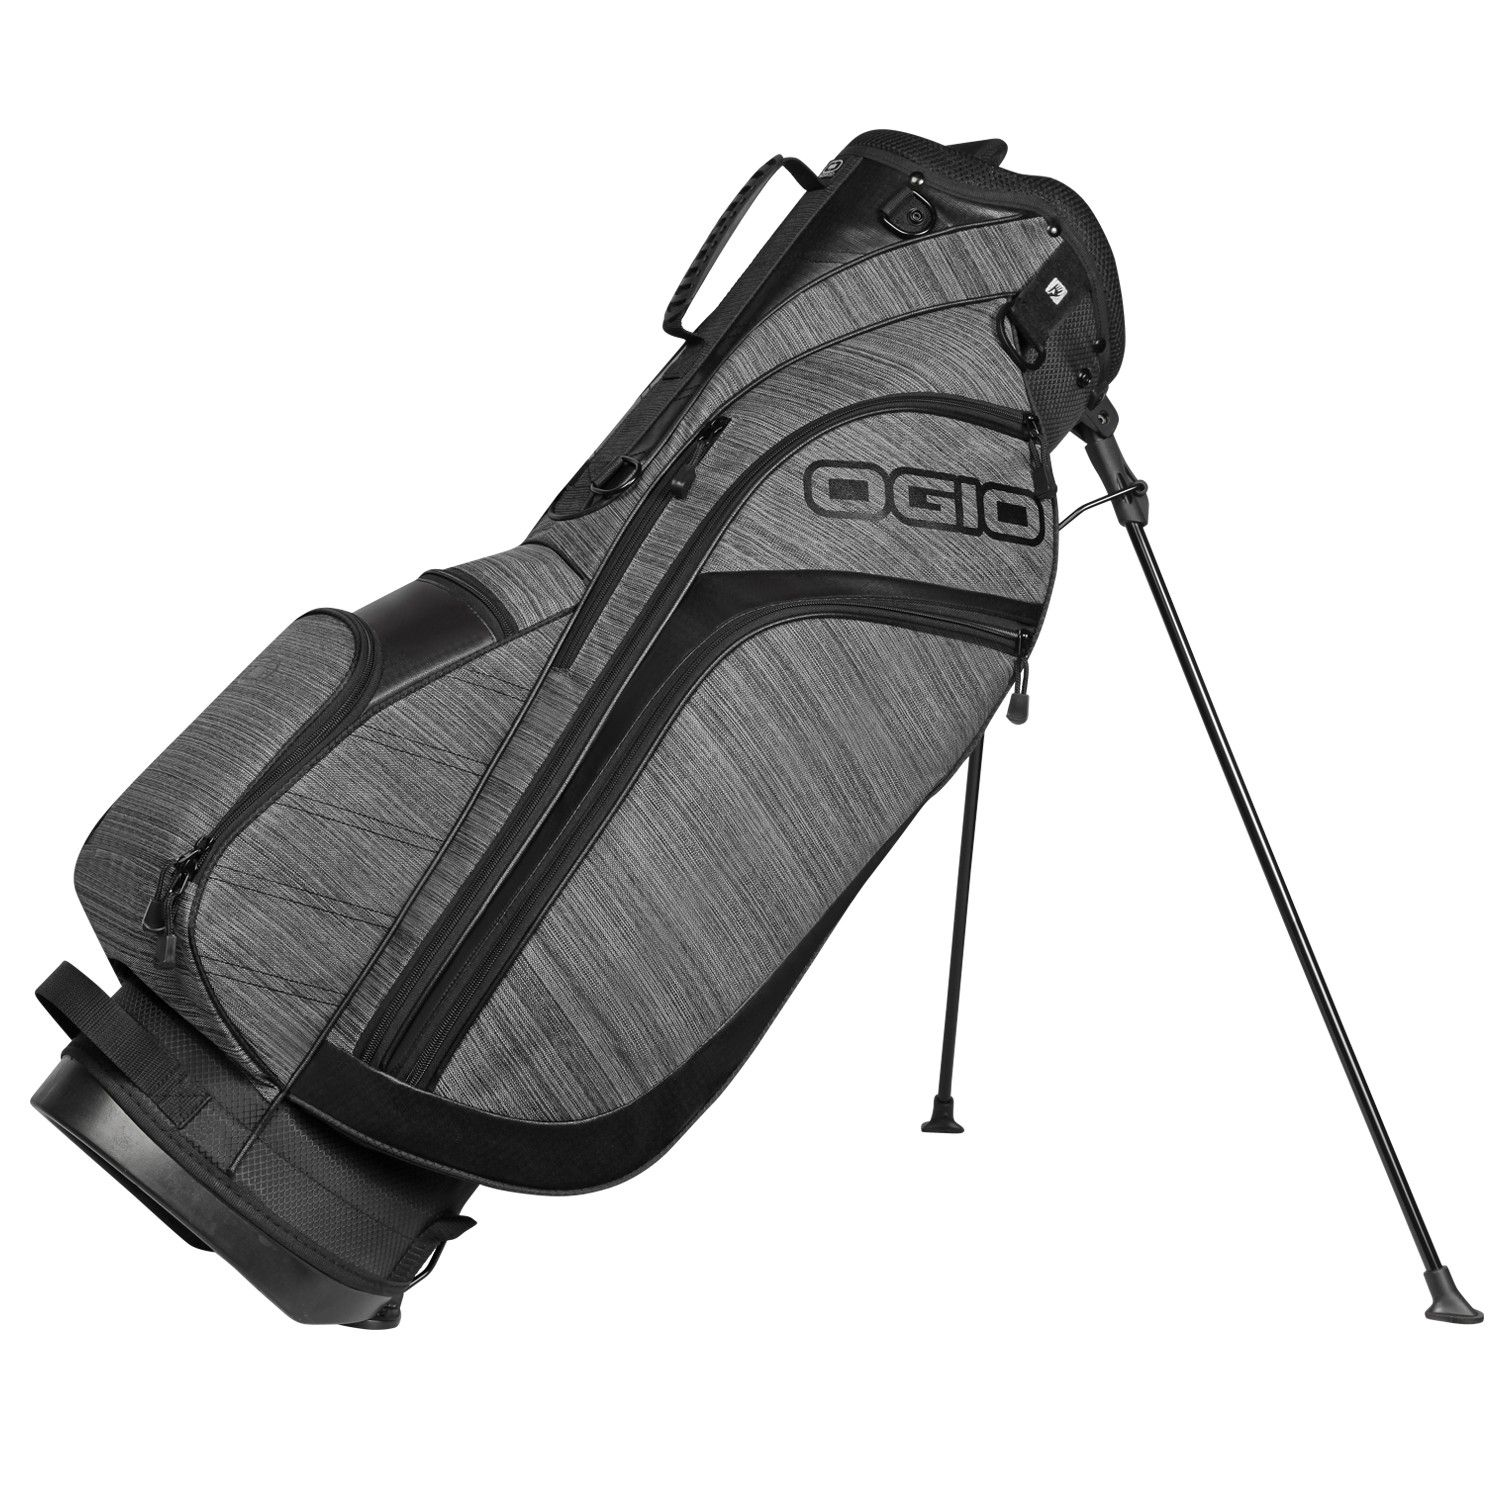 Ogio Press Golf Stand Bag Sweatband Com